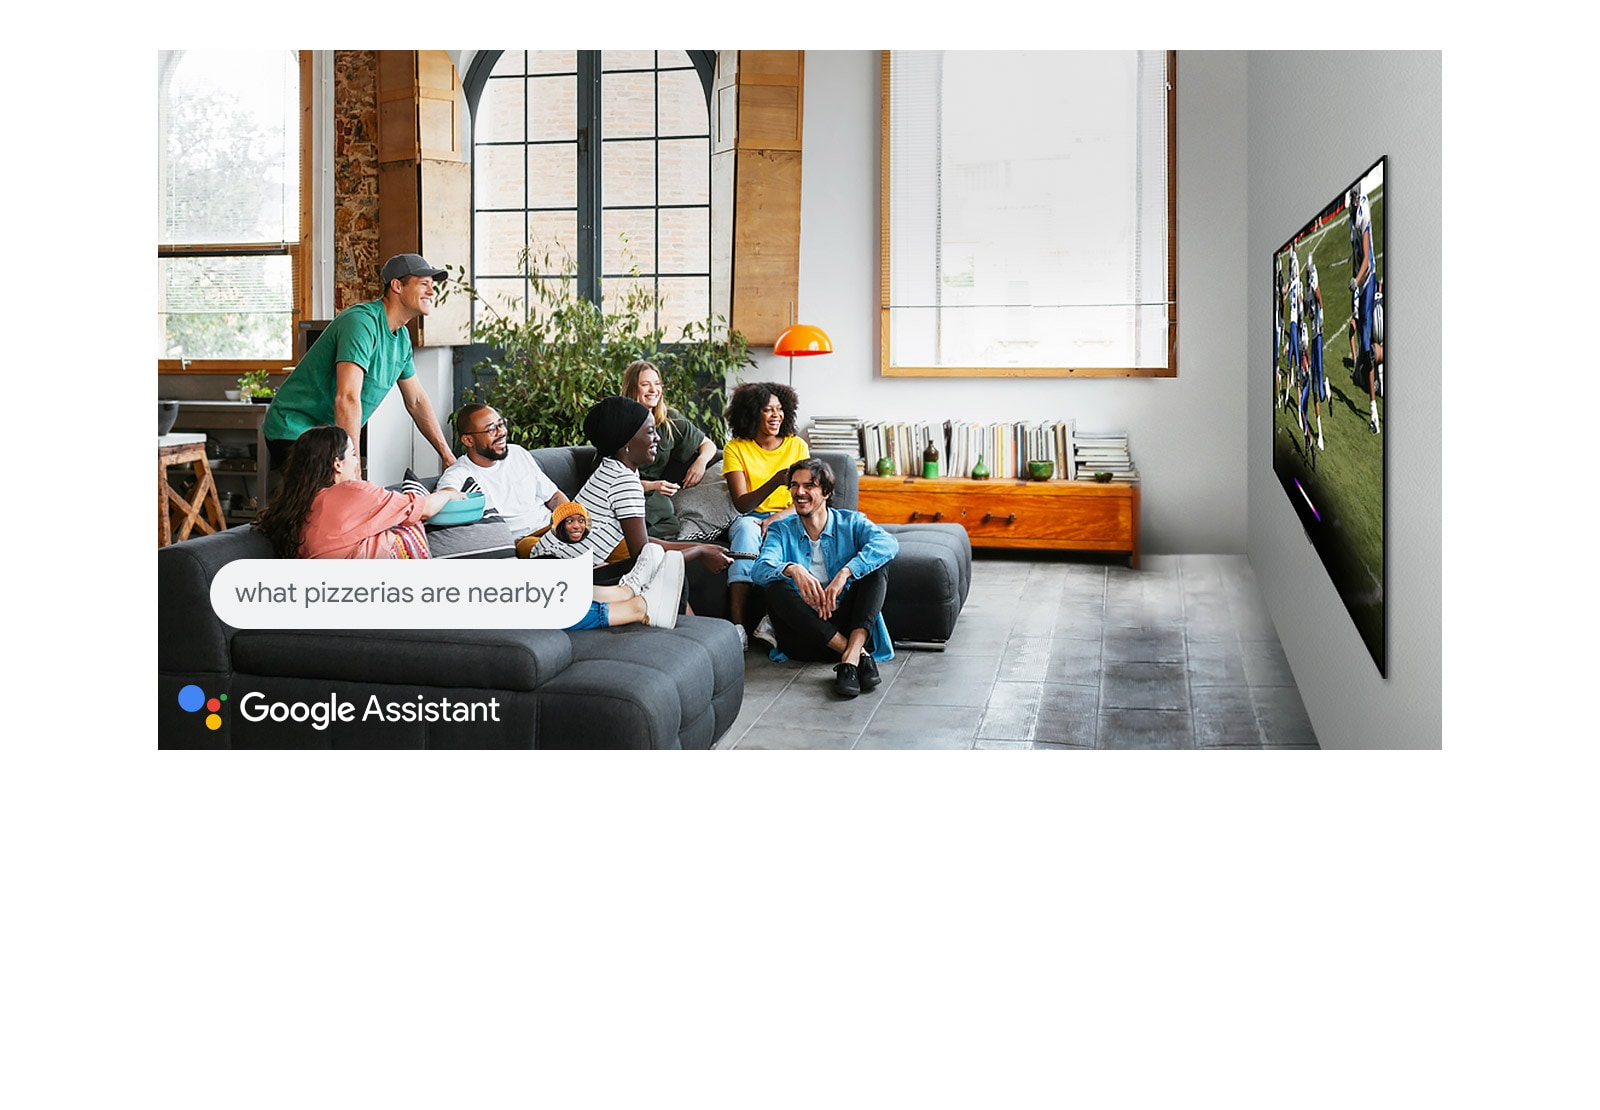 Woman watching football on TV with friends and asking the Google Assistant what pizzerias are nearby